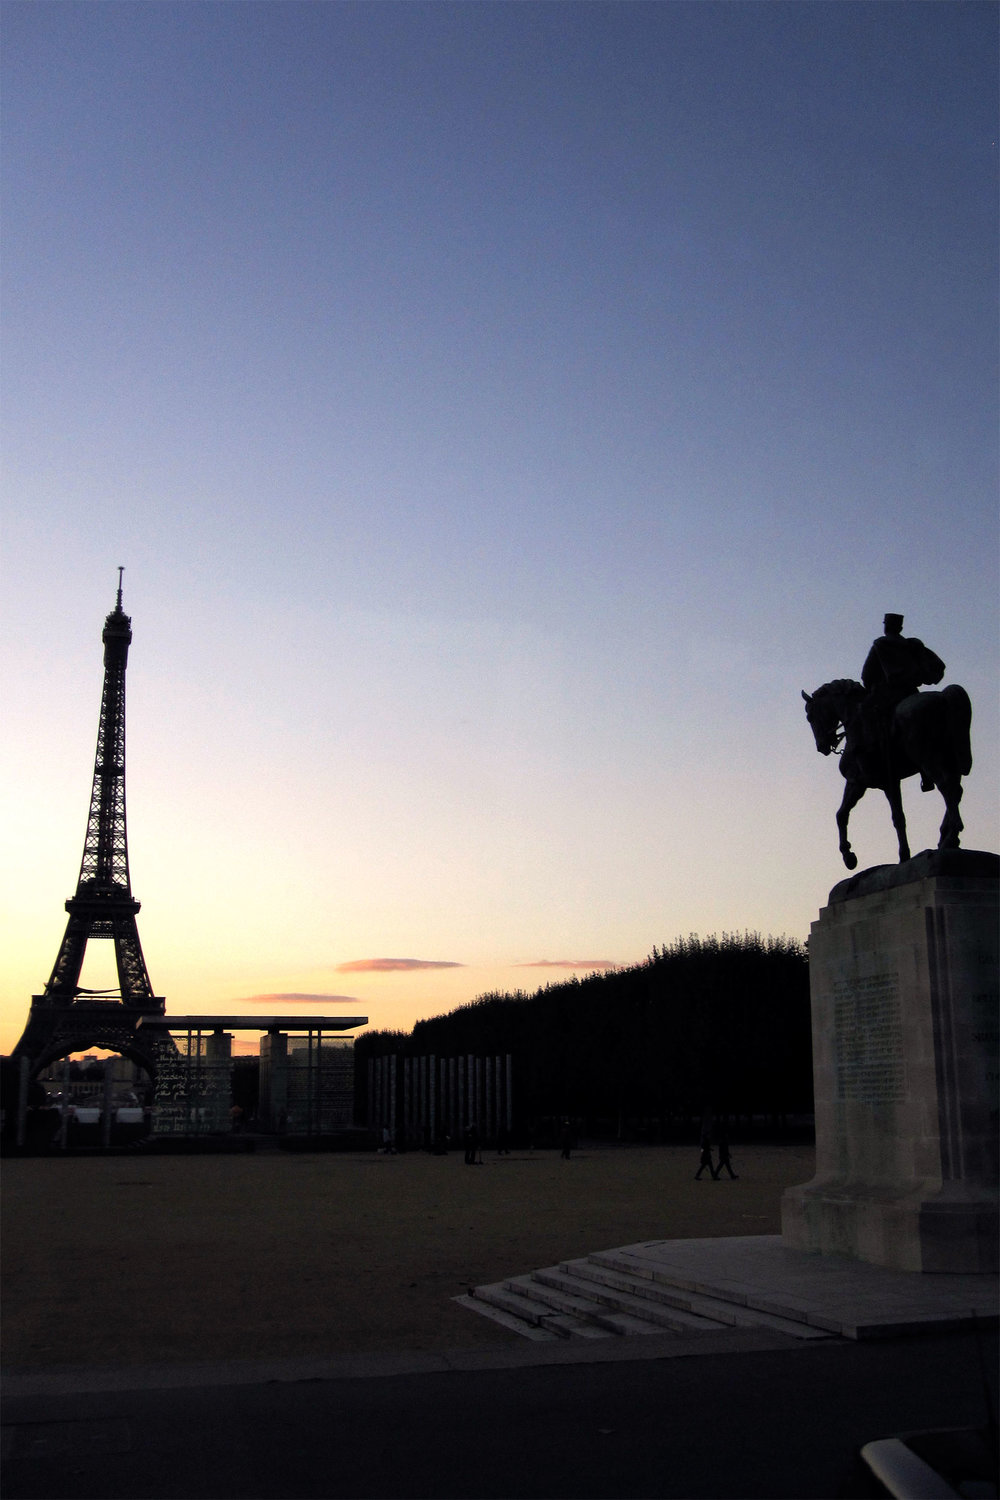 The Eiffel Tower in a Paris sunset